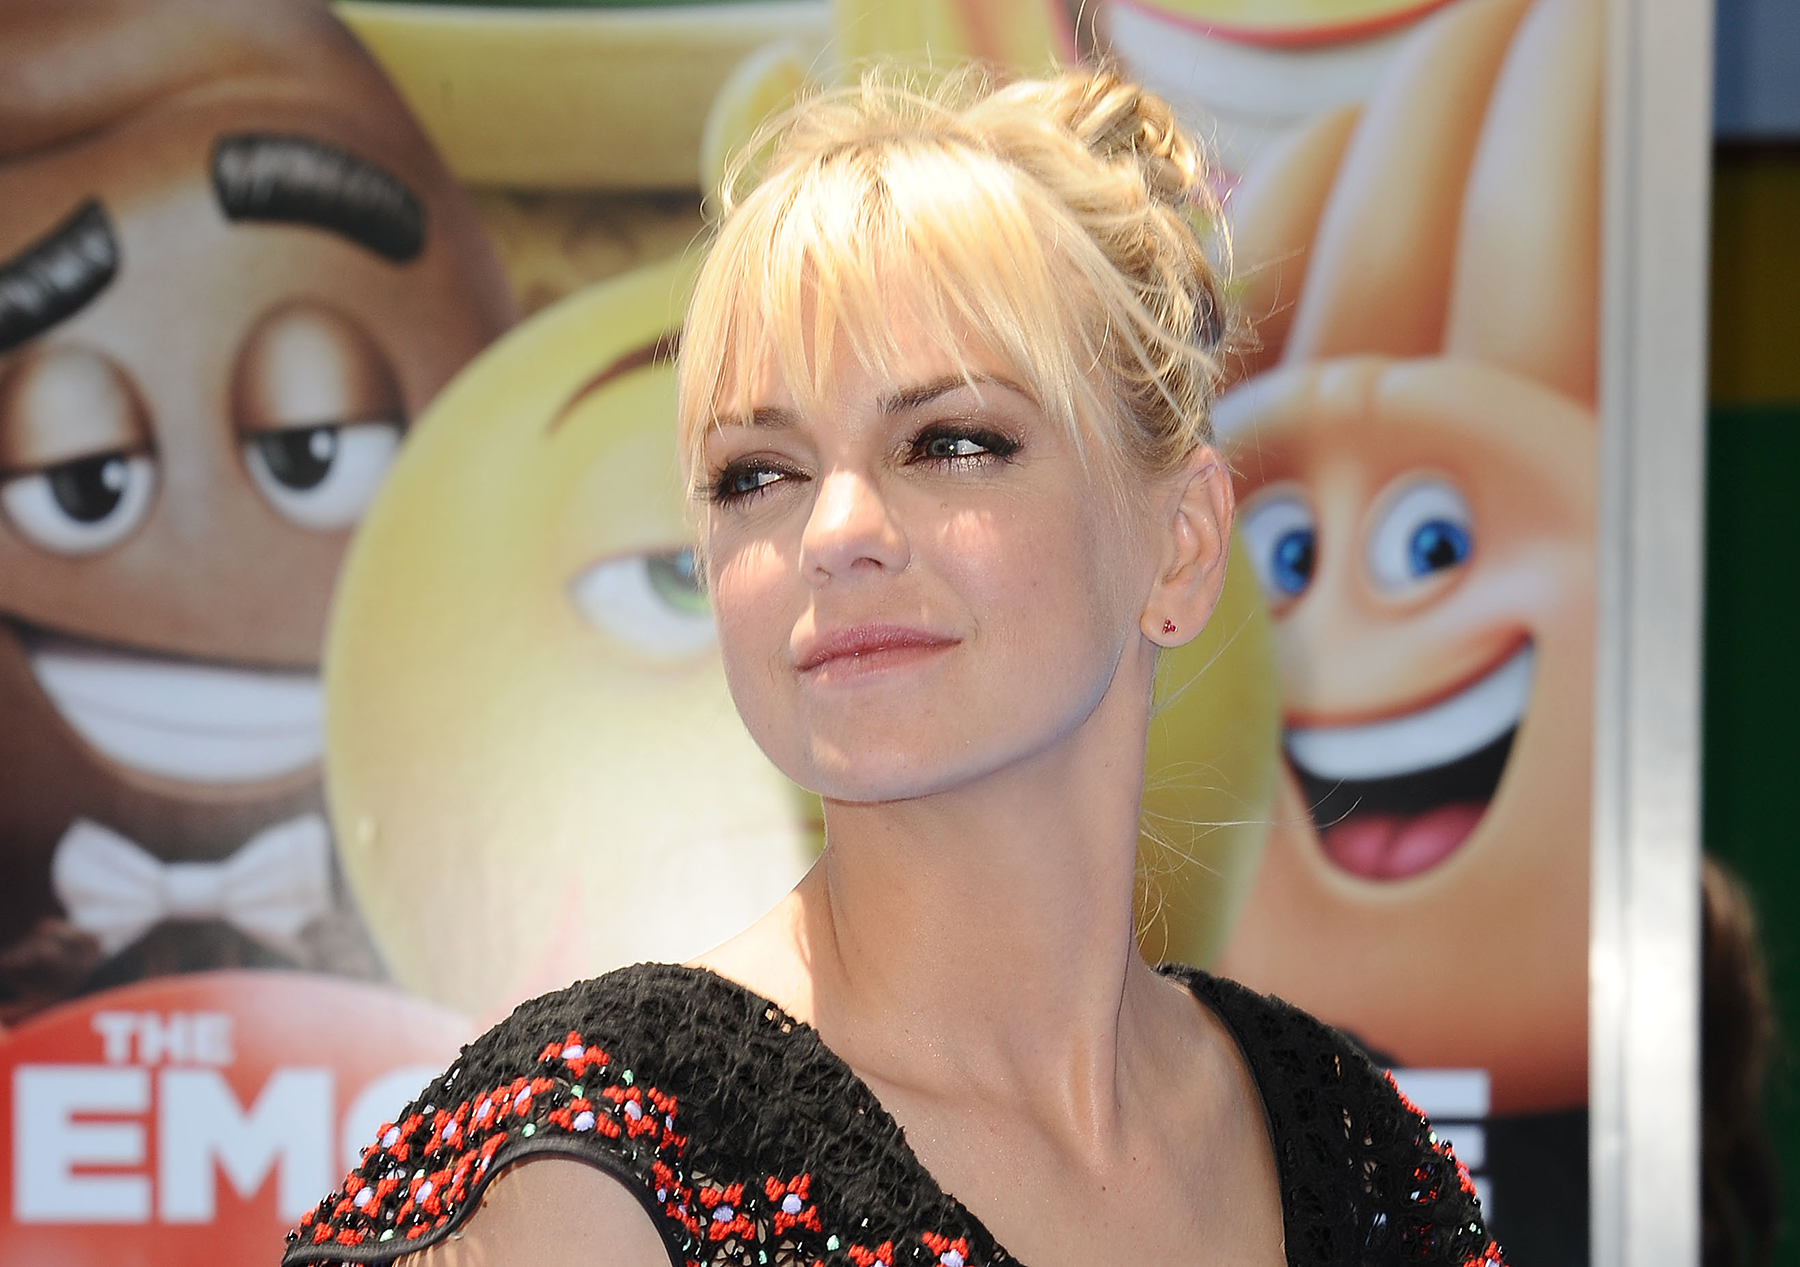 Anna Faris Says This Is the Key to a Healthy Relationship